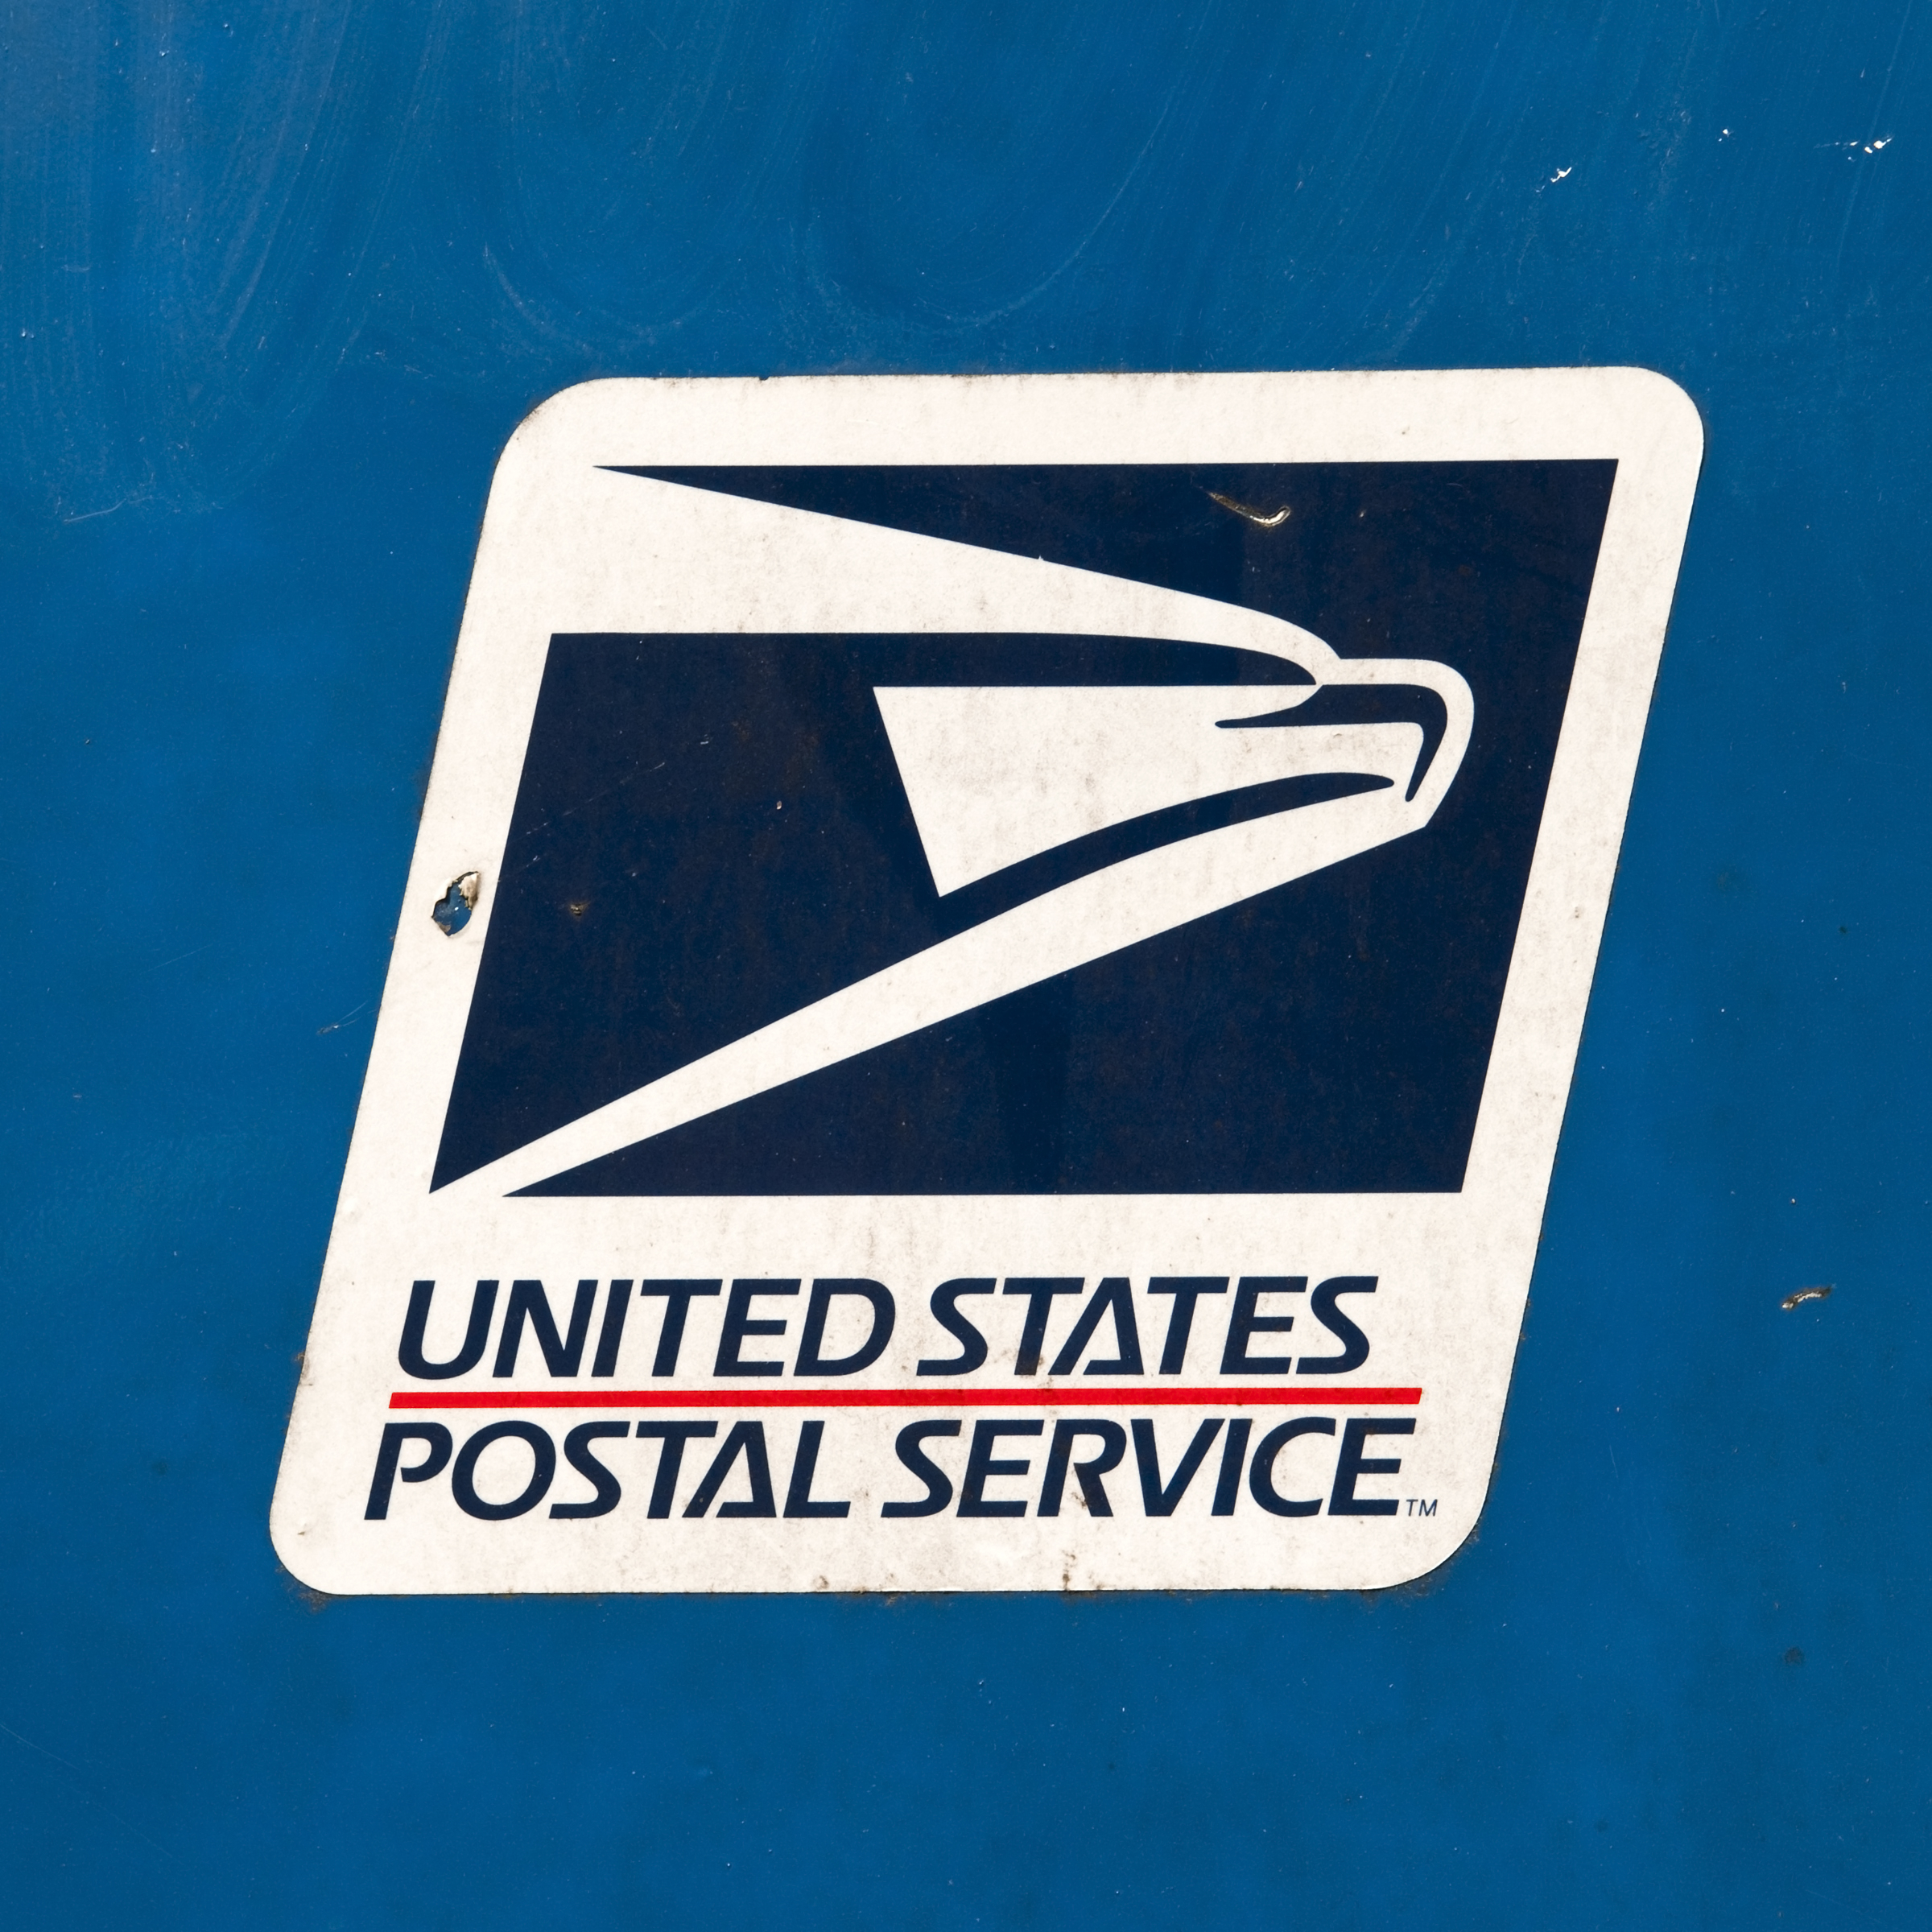 The United States Postal Service USPS also known as the Post Office US Mail or Postal Service is an independent agency of the United States federal government